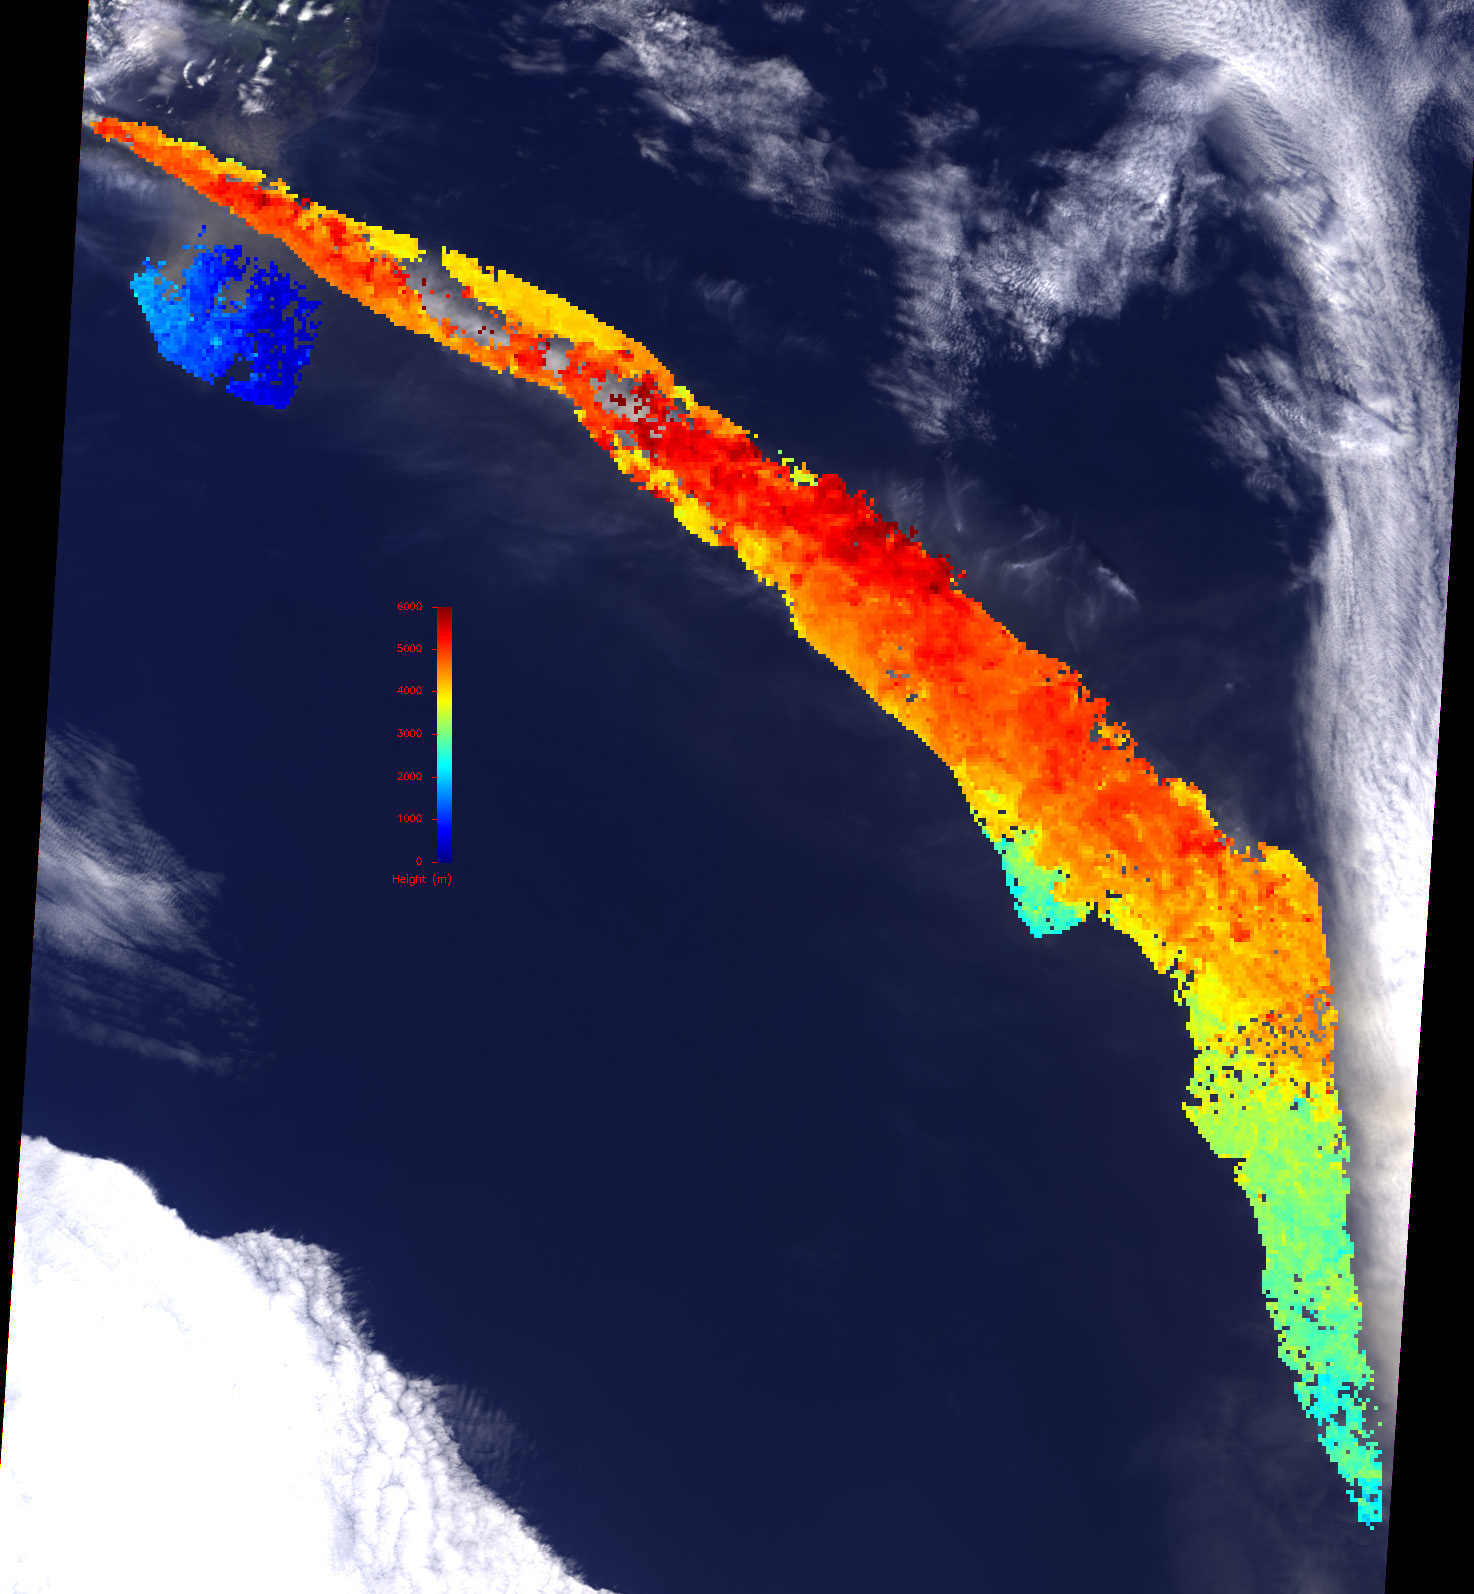 Eruption of Eyjafjallajökull Volcano, Iceland - related image preview